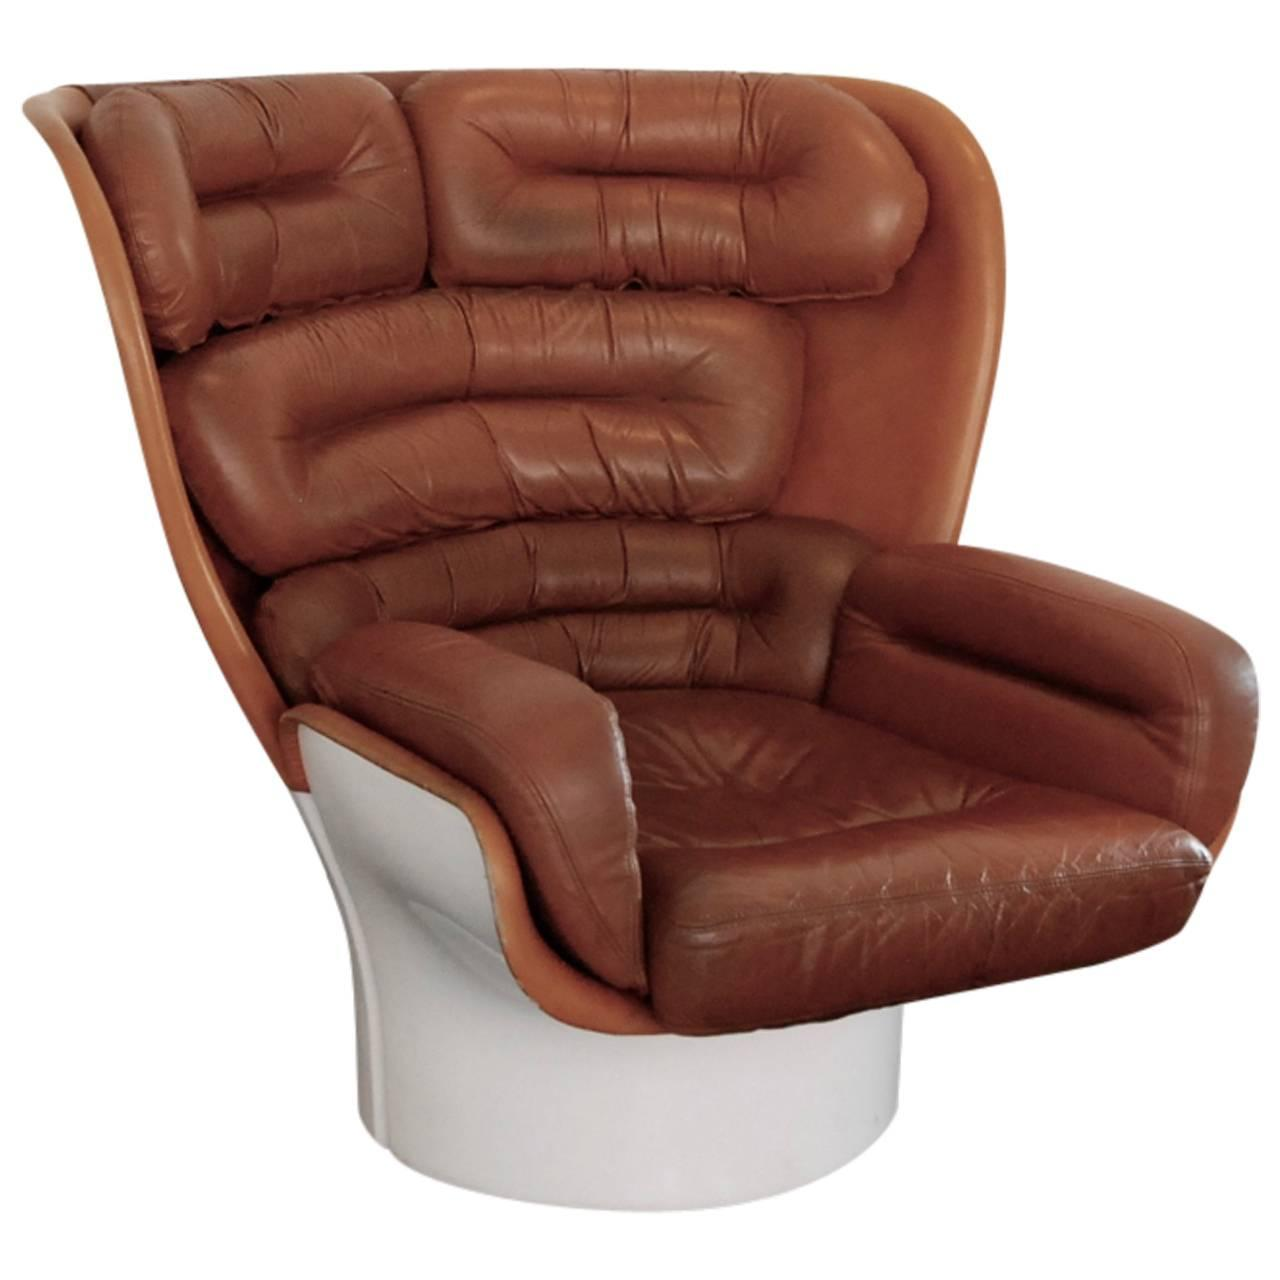 Joe Colombo Quot Elda Quot Chair For Sale At 1stdibs